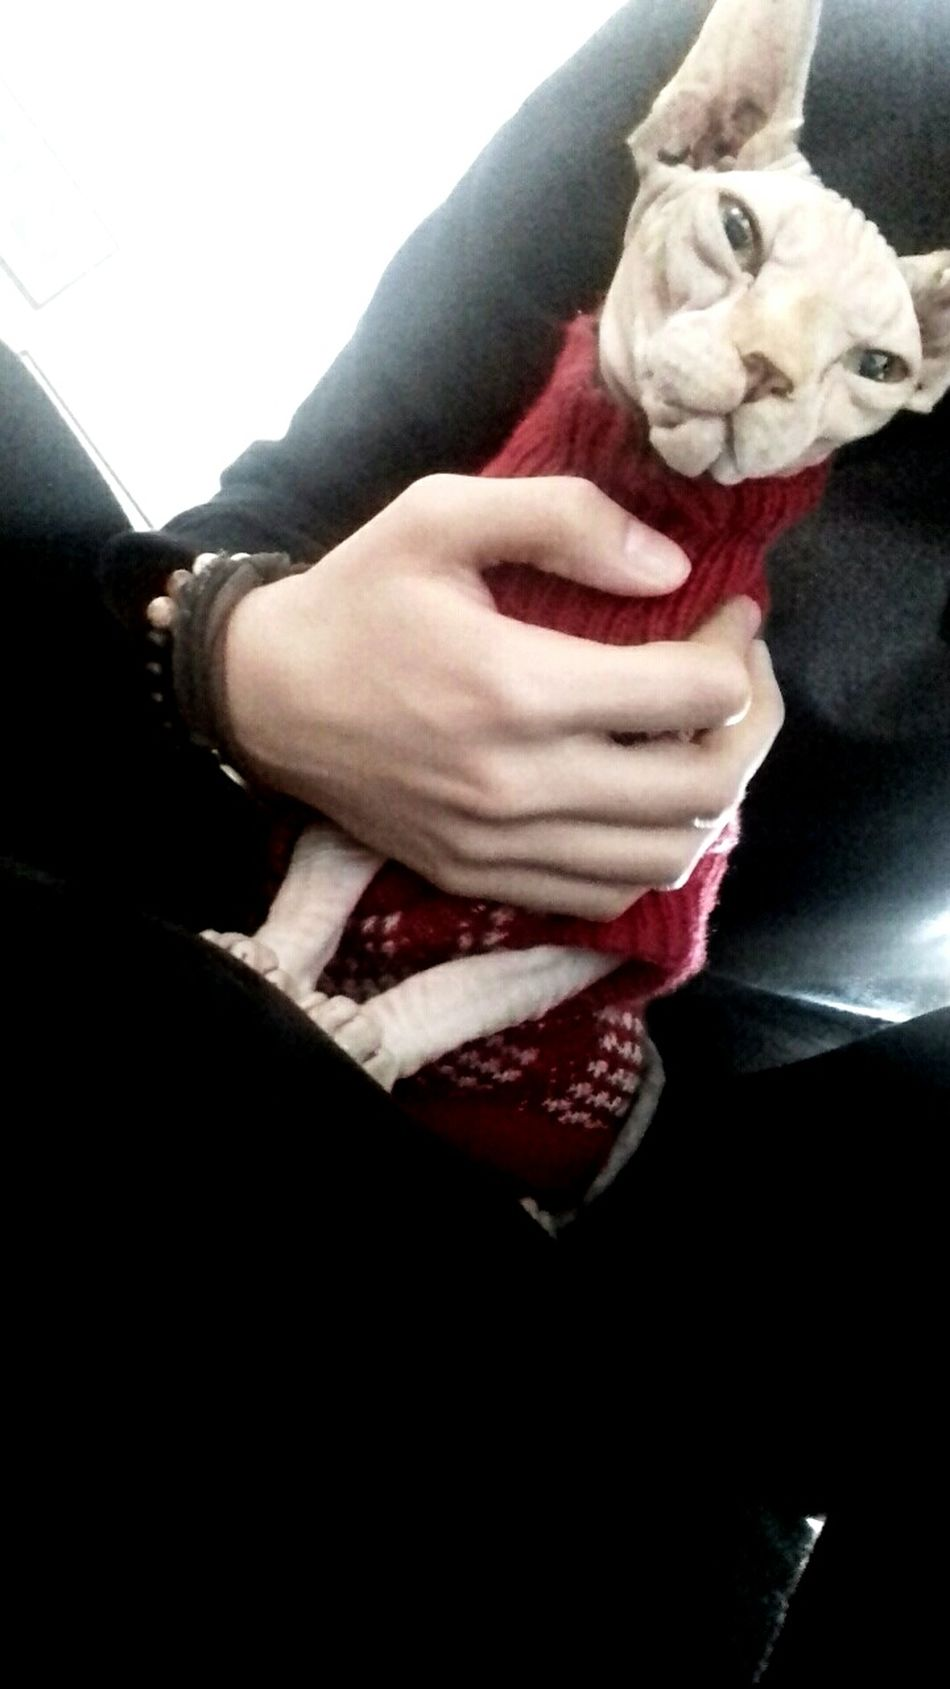 Human Hand Cat♡ My Cat Ily❤ Catoftheday Cat Lovers Catlover Catstagram Cat Cat Photography Cats Of EyeEm Takenbyme😛👌